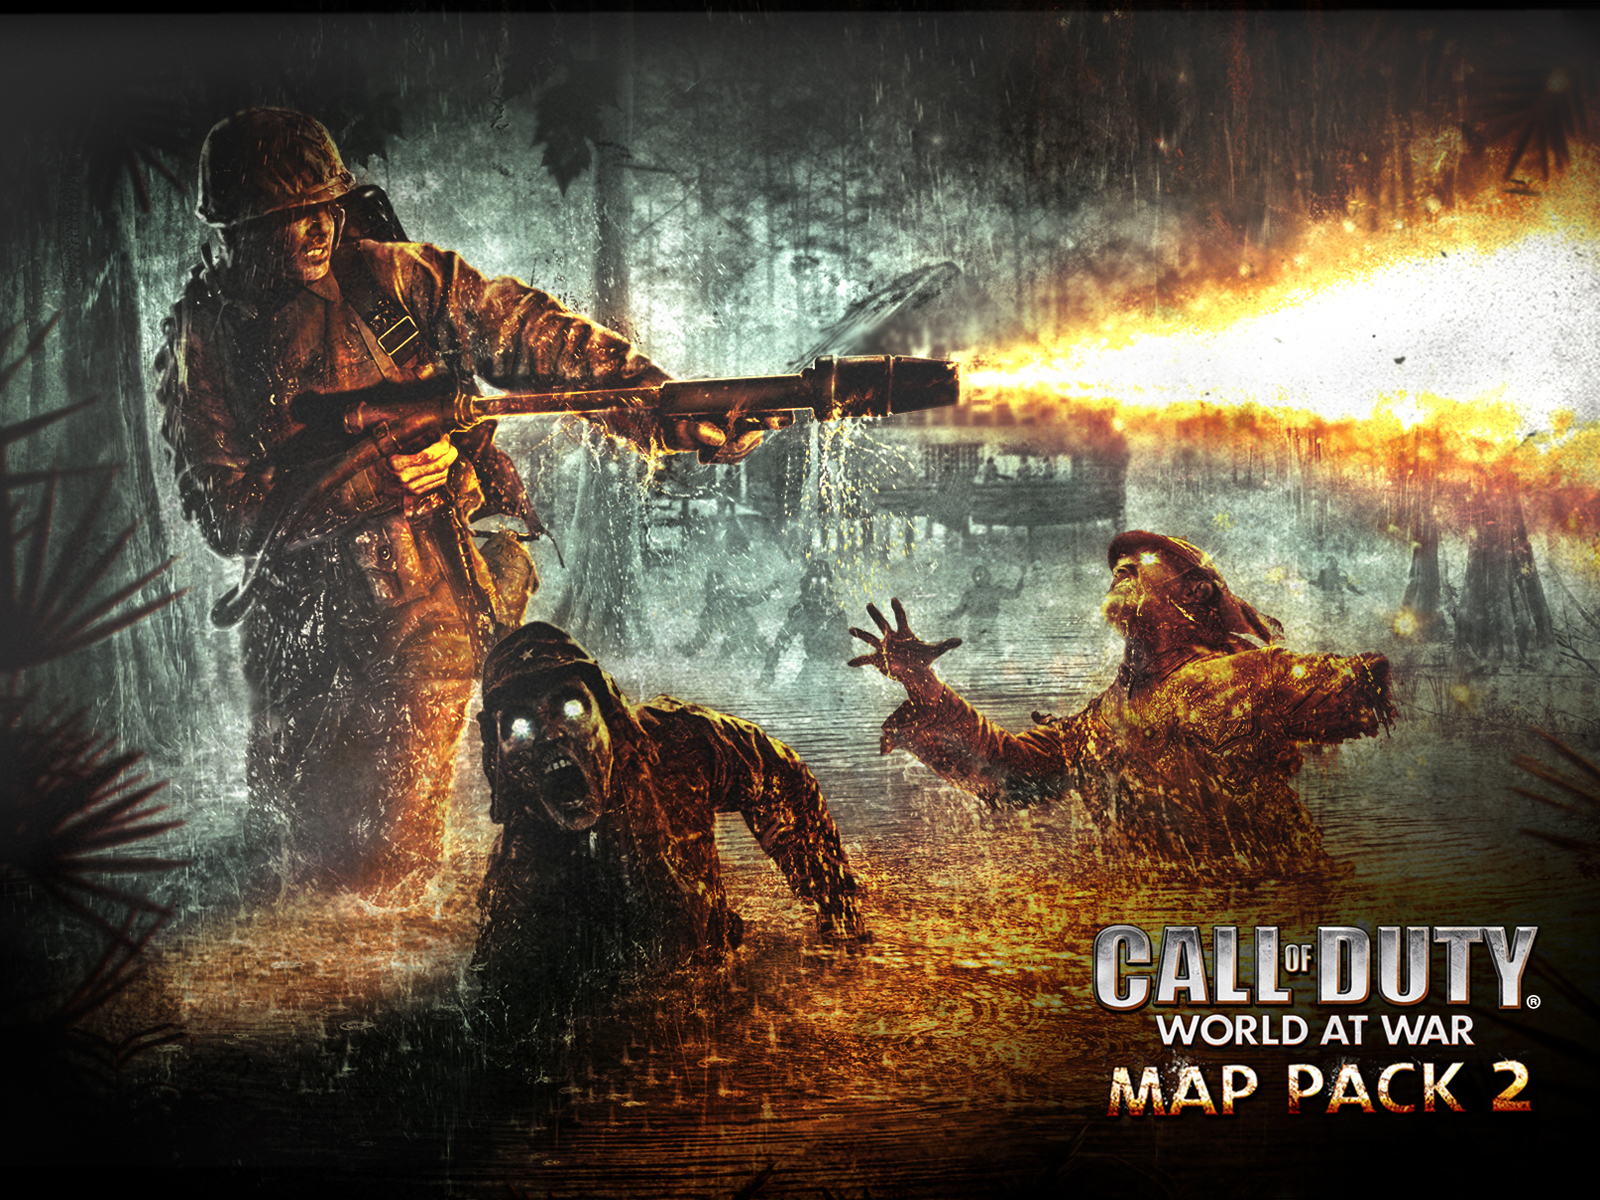 Call of Duty: World at War - Map Pack 2 | Call of Duty Wiki | FANDOM ...